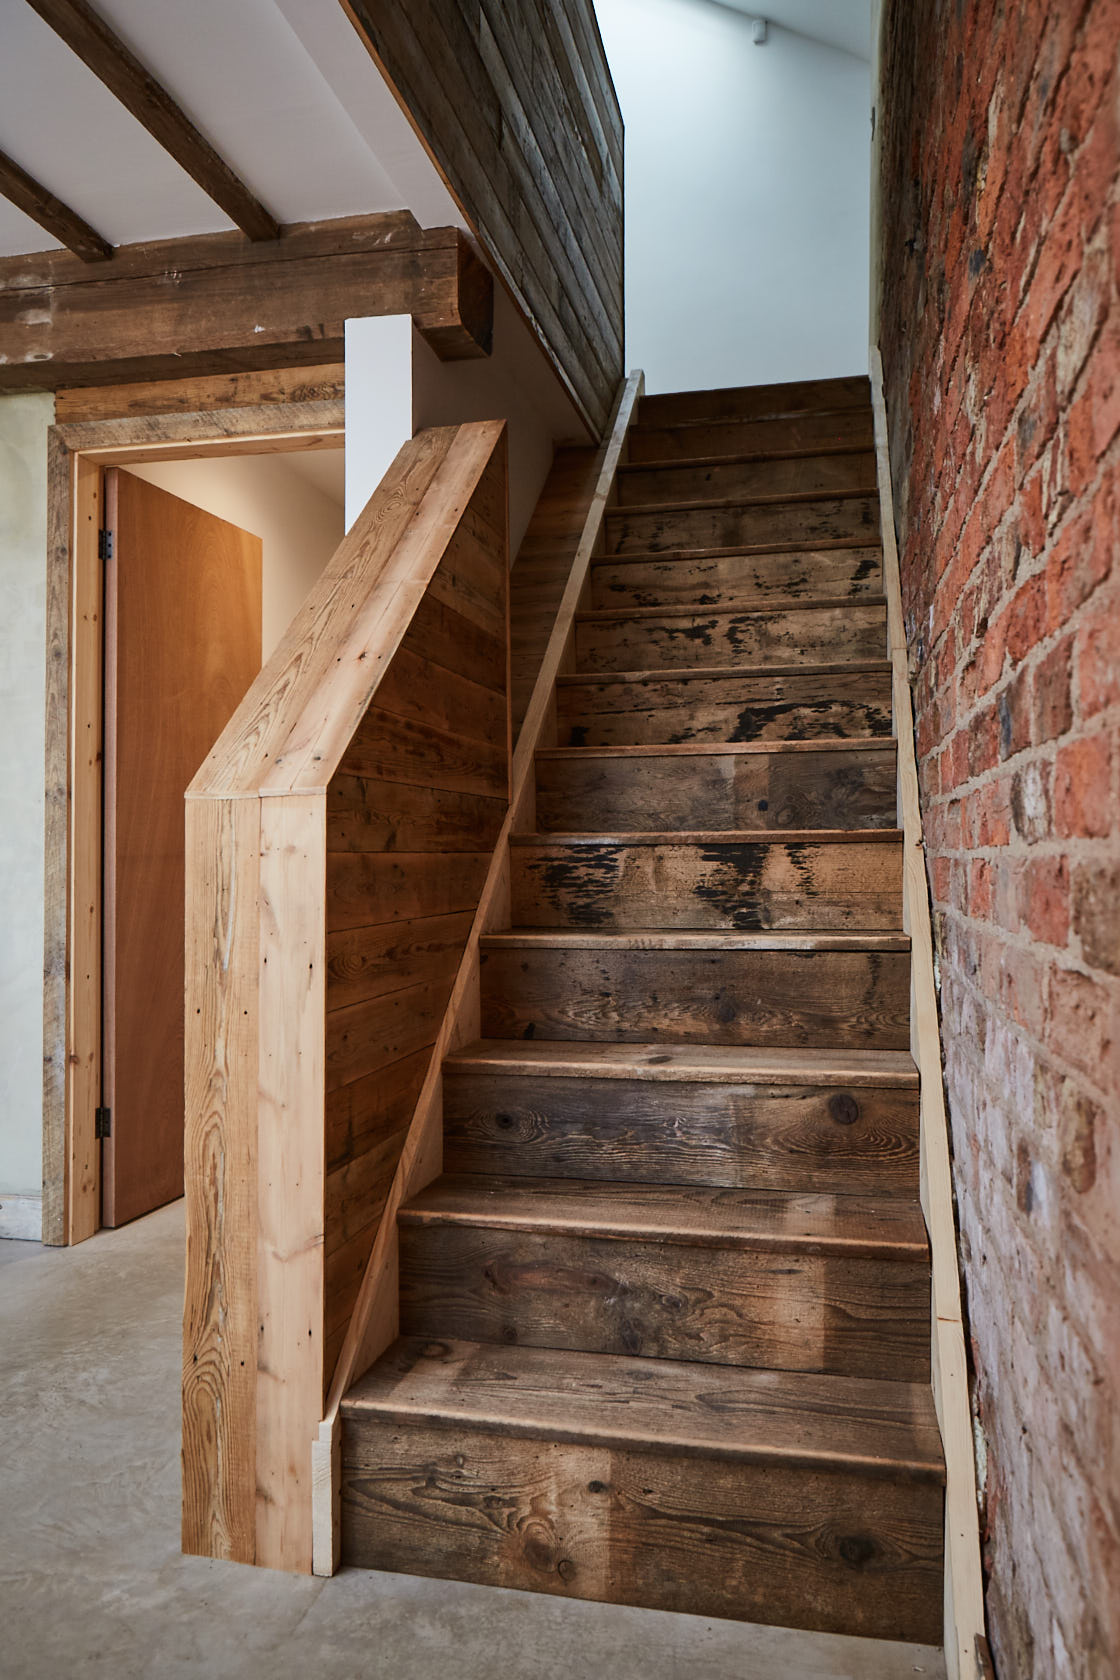 Stairs clad in reclaimed timber